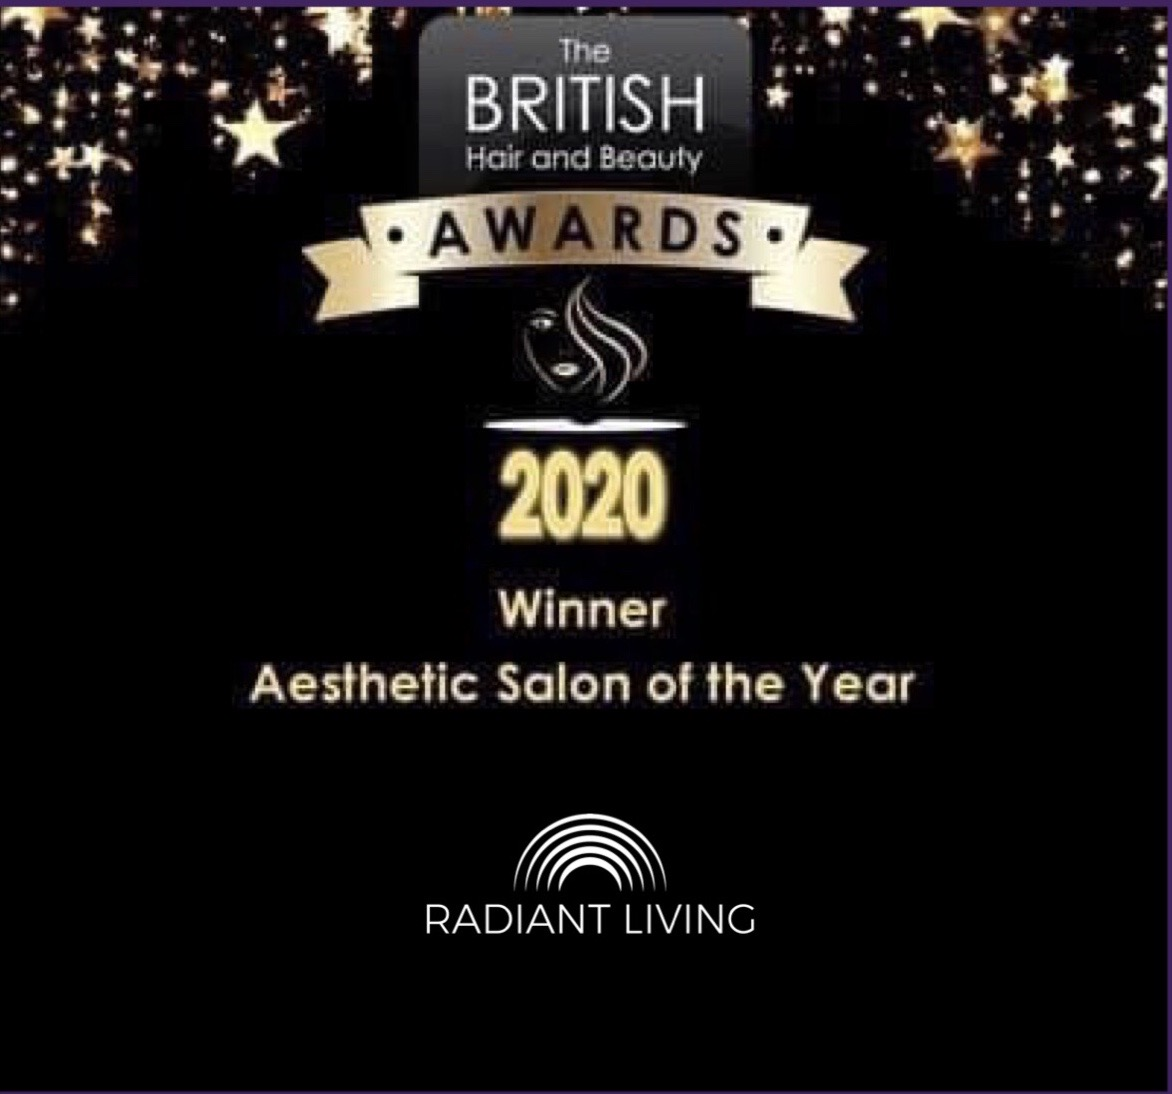 Aesthetic Salon of the Year 2020